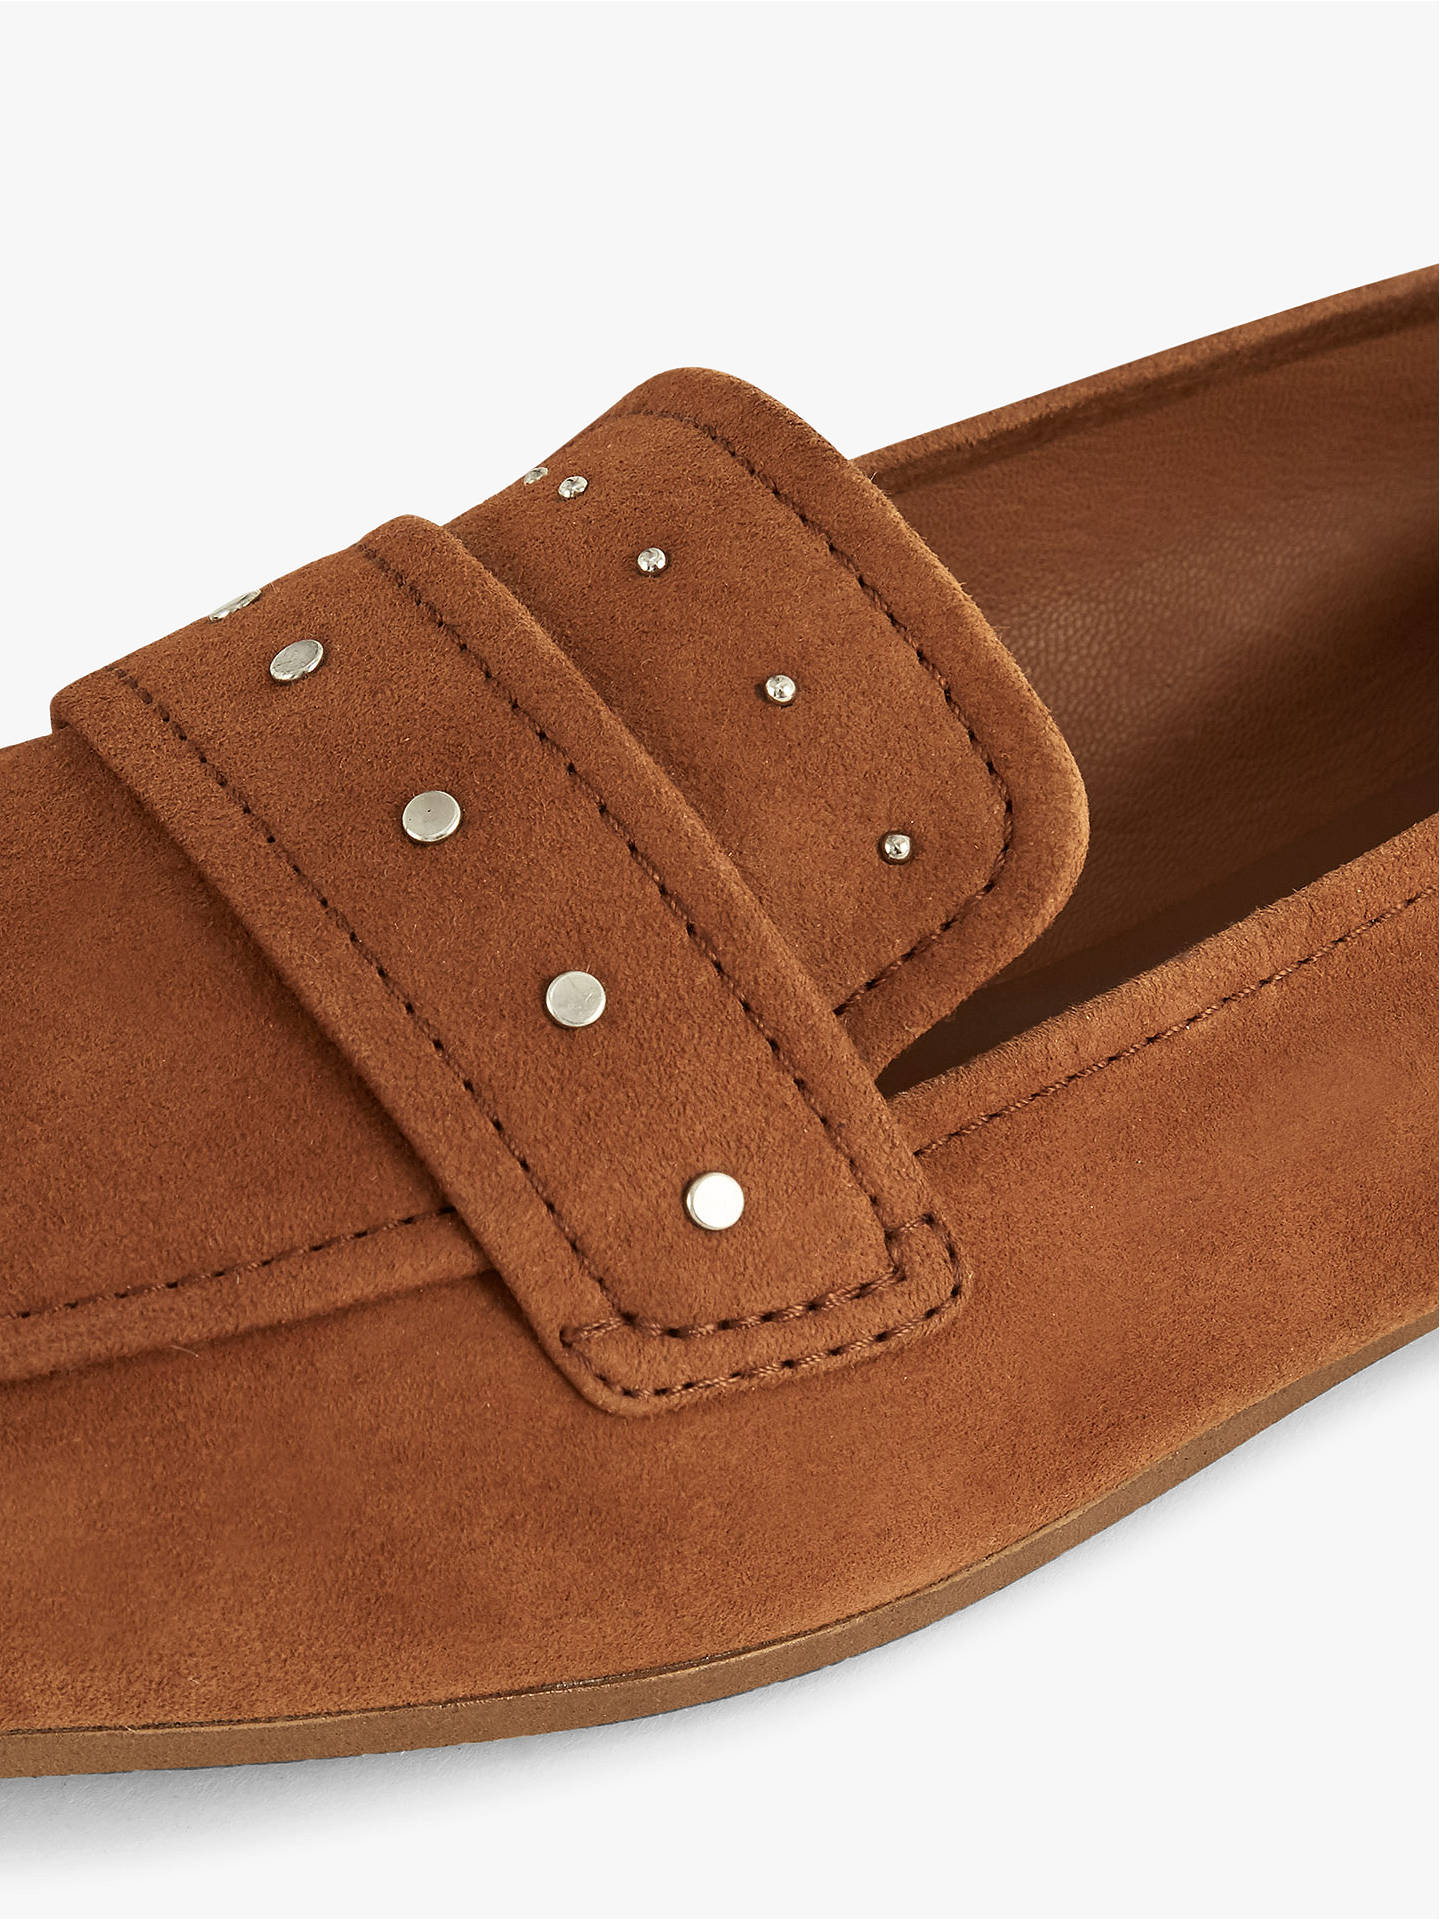 BuyReiss Elba Loafers, Mid Brown Leather, 4 Online at johnlewis.com